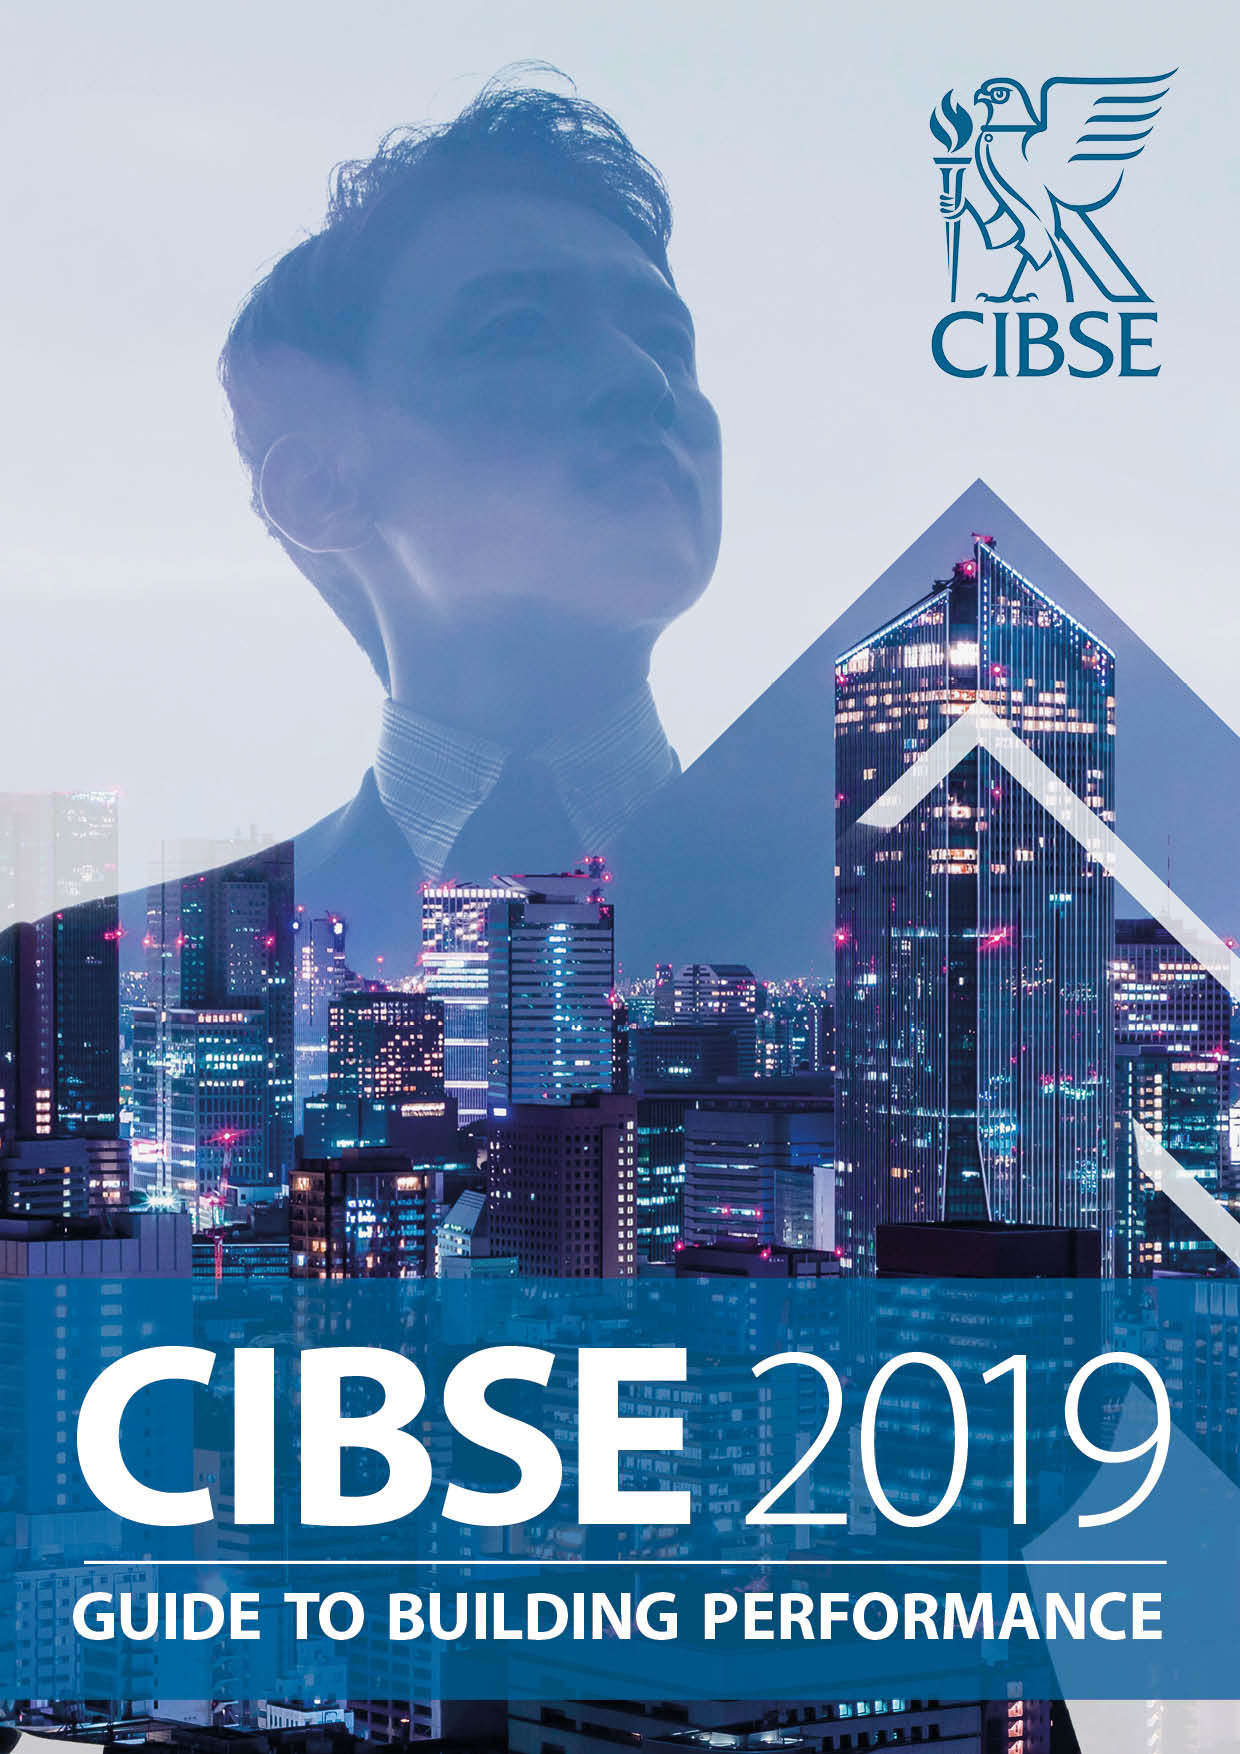 CIBSE Guide to Building Performance